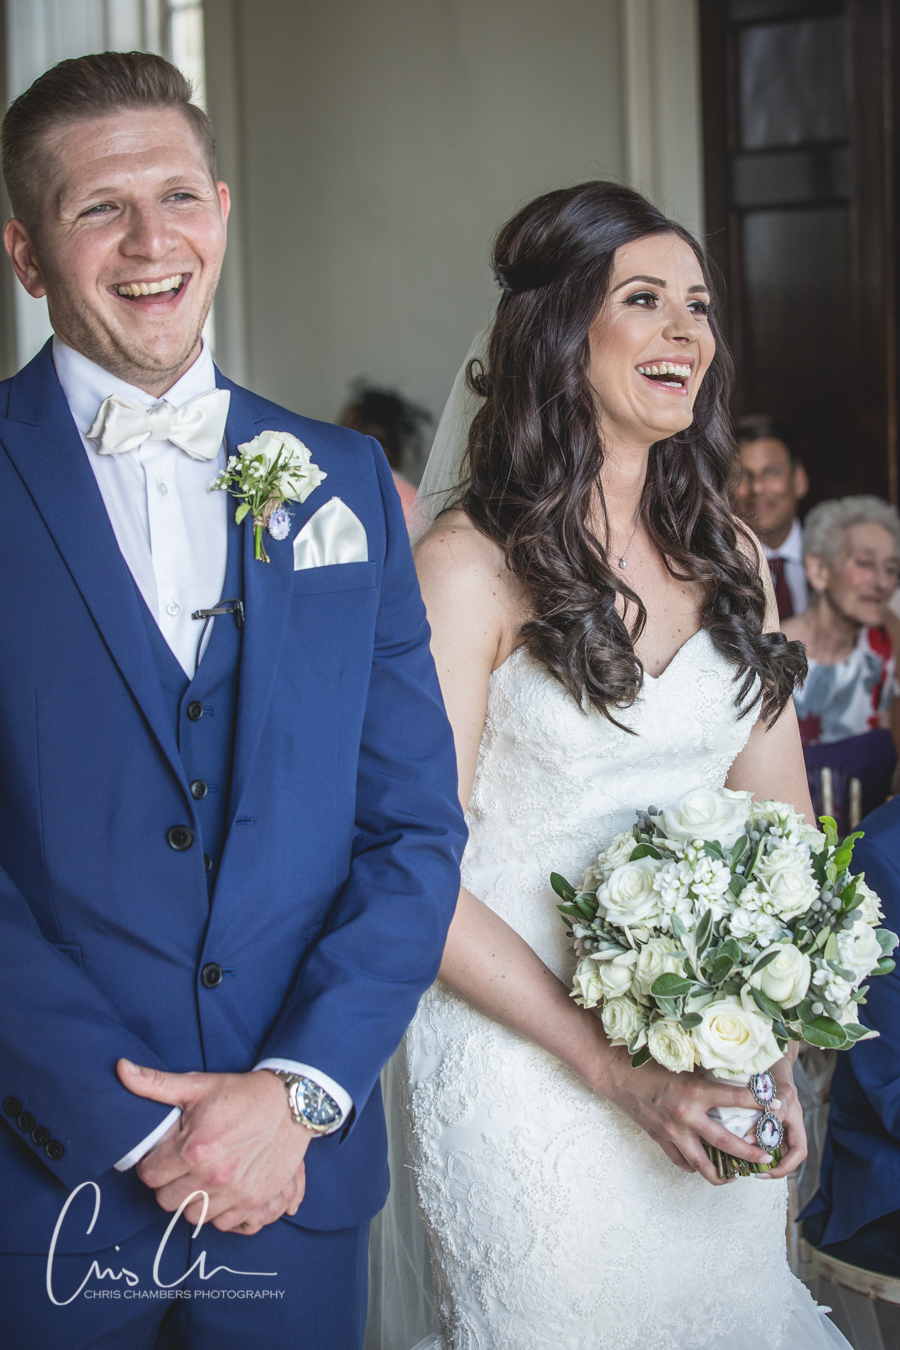 Stubton Hall Wedding photography, Chris Chambers Photography, Wedding Photographer in Lincolnshire